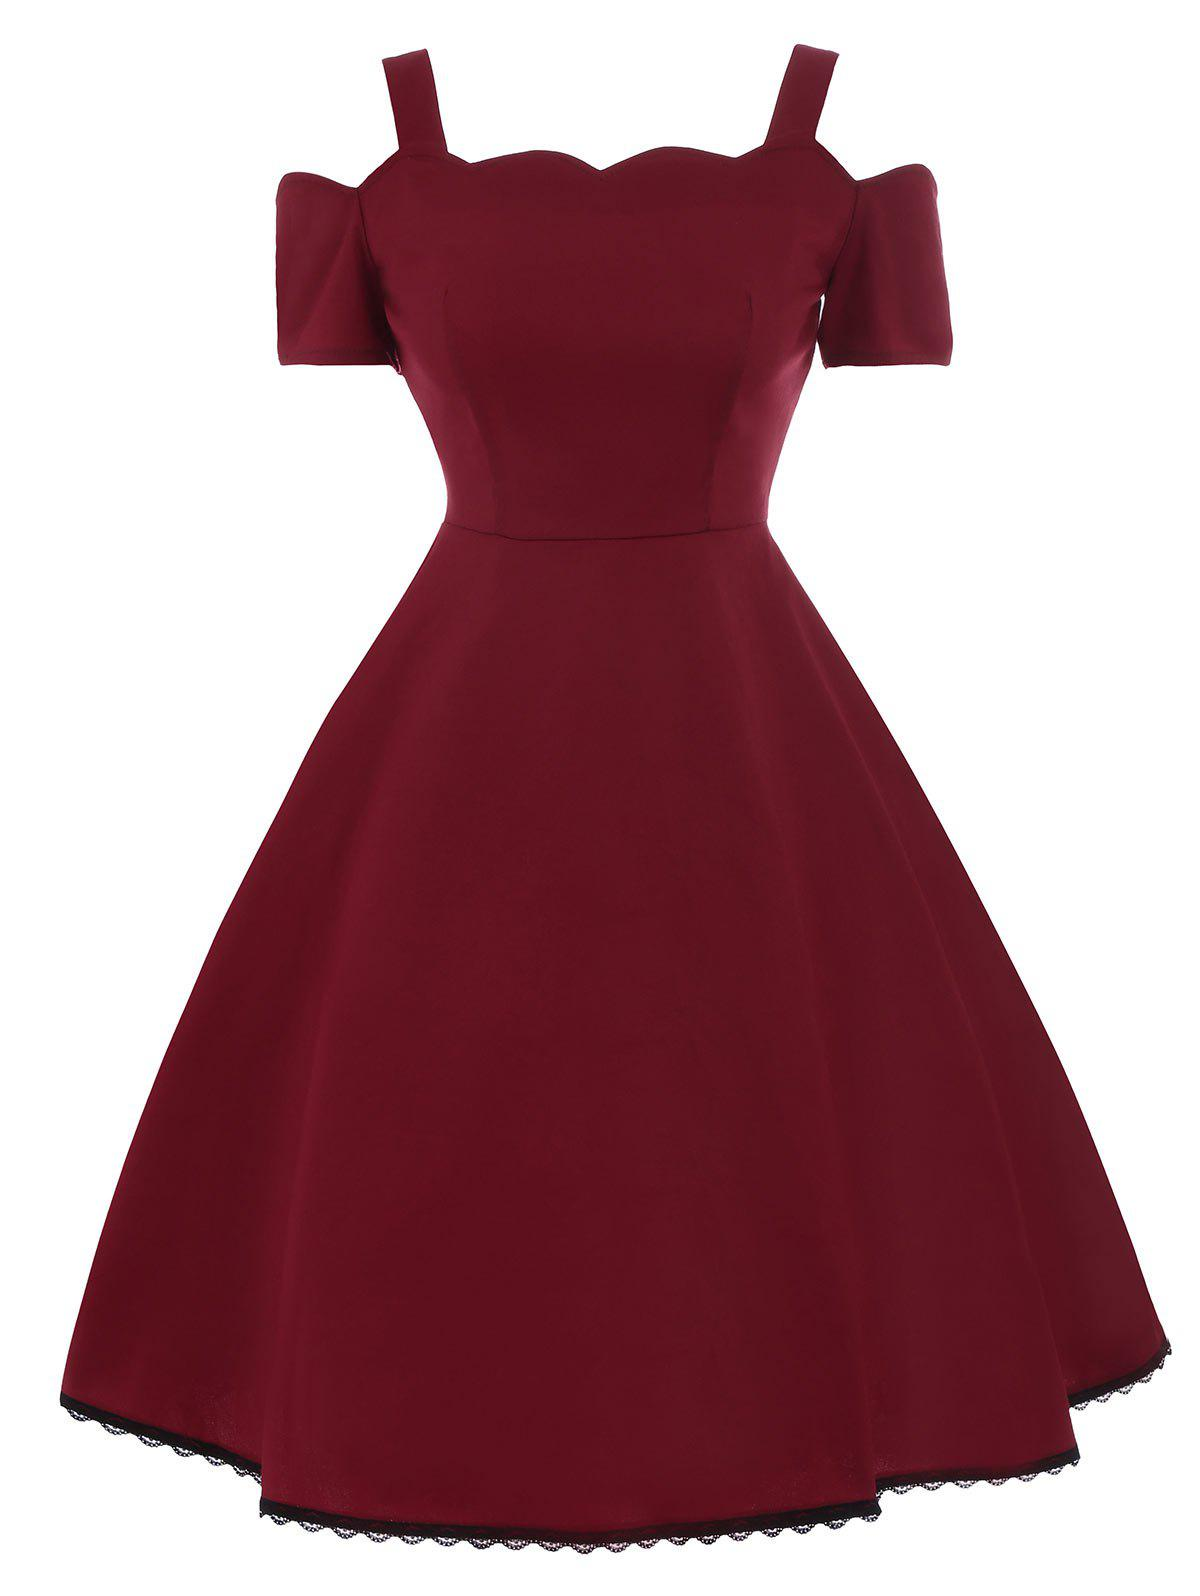 A Line Lace Trim Vintage Skater DressWOMEN<br><br>Size: 2XL; Color: WINE RED; Style: Vintage; Material: Cotton,Polyester; Silhouette: A-Line; Dress Type: Fit and Flare Dress; Dresses Length: Mini; Neckline: Spaghetti Strap; Sleeve Length: Short Sleeves; Embellishment: Lace,Panel; Pattern Type: Others; With Belt: No; Season: Summer; Weight: 0.3500kg; Package Contents: 1 x Dress;